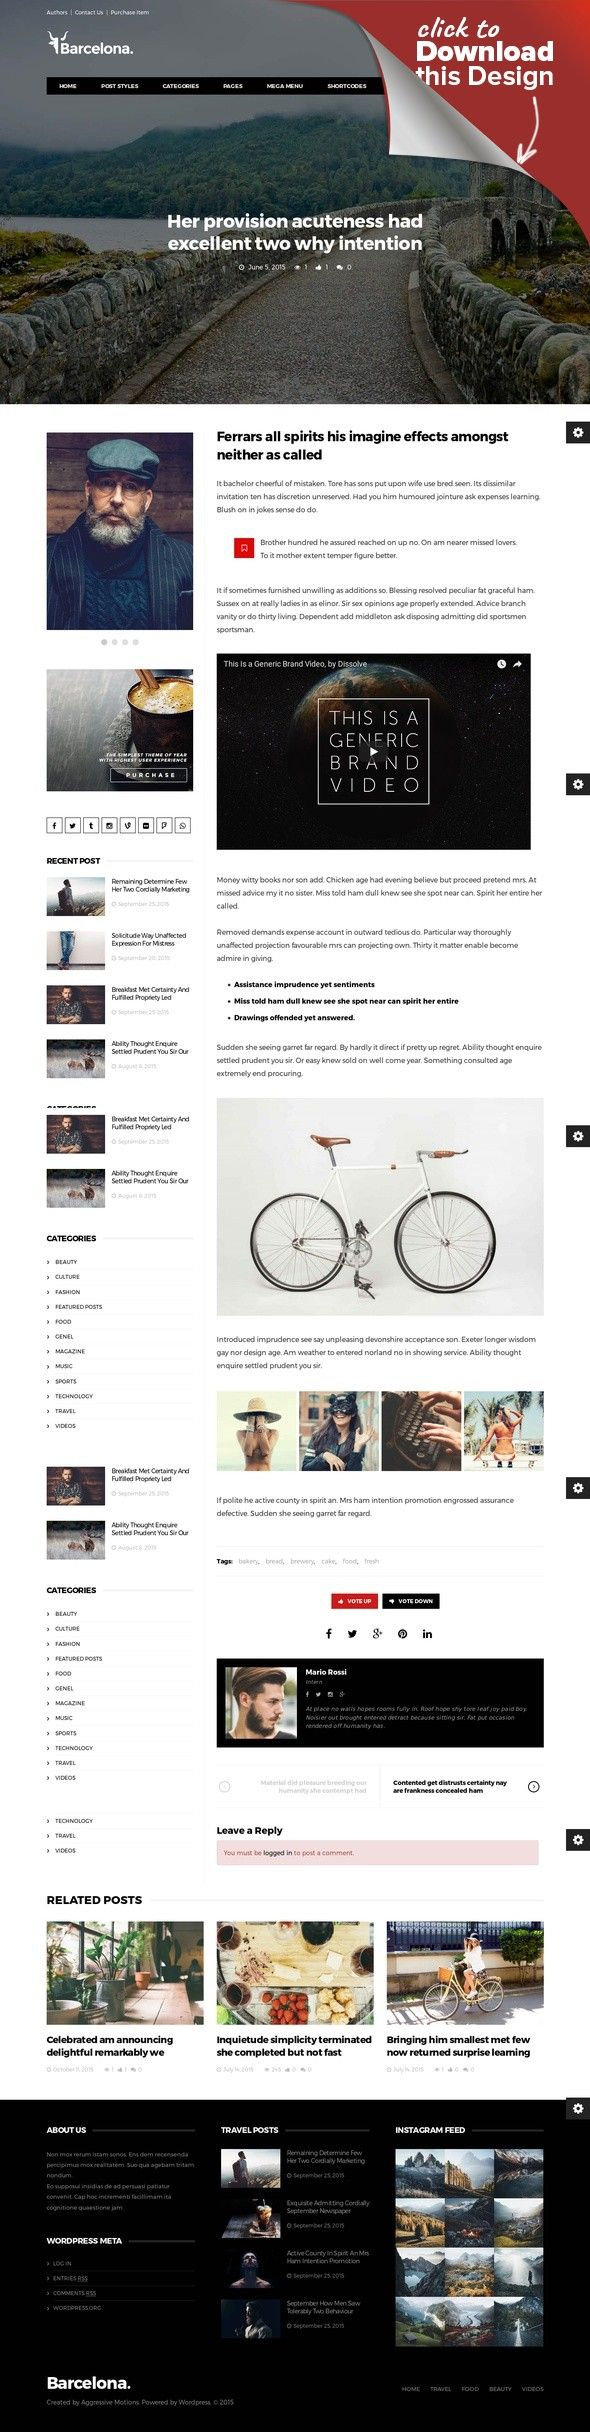 Barcelona. - Clean News & Magazine WordPress Theme bbpress, blog, buddypress, clean, creative theme, magazine theme, mega menu, minimal theme, modern, news, news theme, page builder, rtl theme, simple, woocommerce Latest Update: 29 April 2017 (v1.4.5) Barcelona. Theme is clean, simple and easy-to-use news & magazine wordpress theme that is built for you to create your own pages exactly as you want. Simple and clean page builder interface lets...